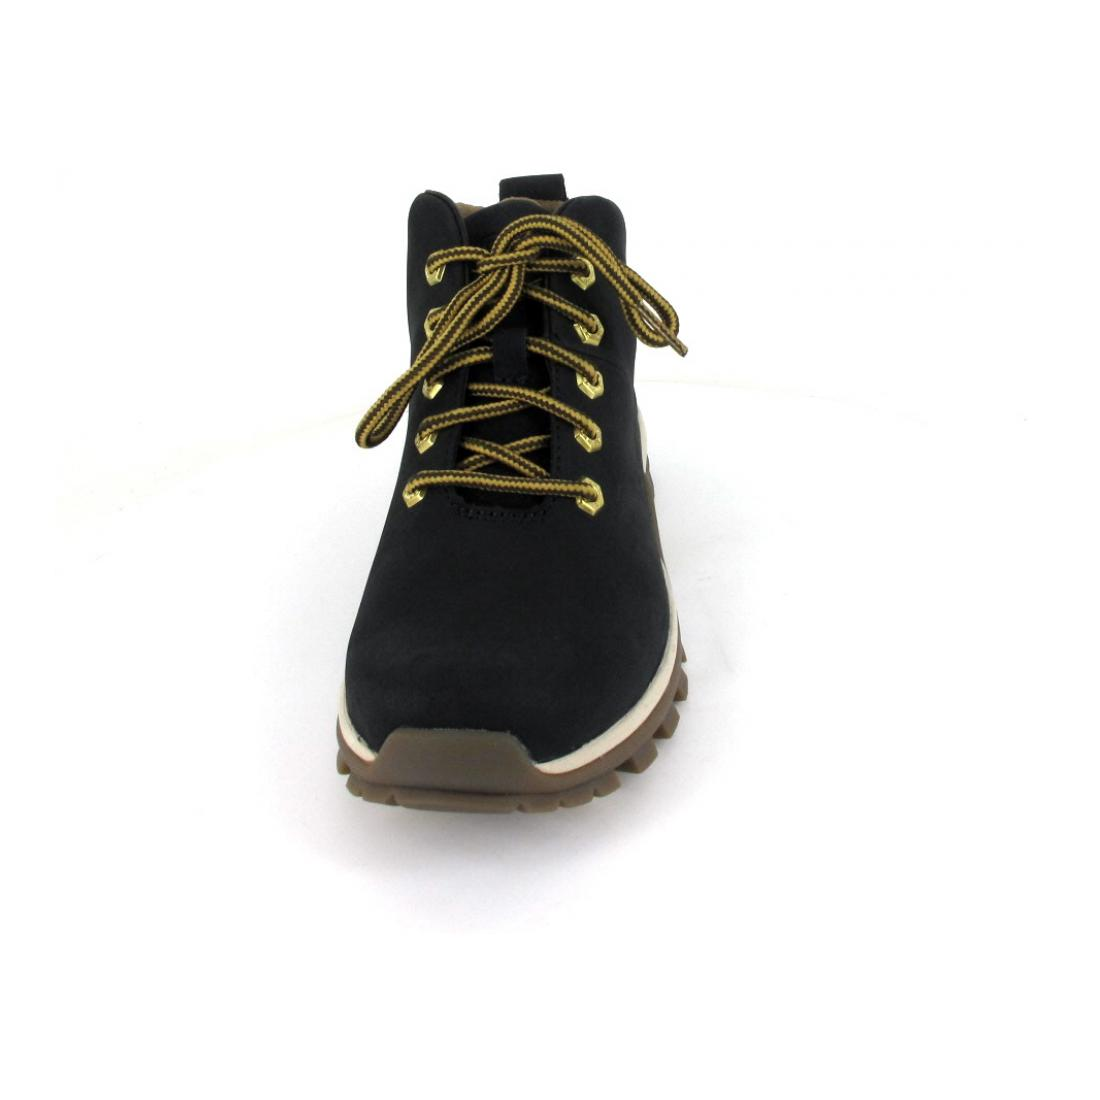 Camel Active Stiefelette Vancouver   Schuh Welt Wo